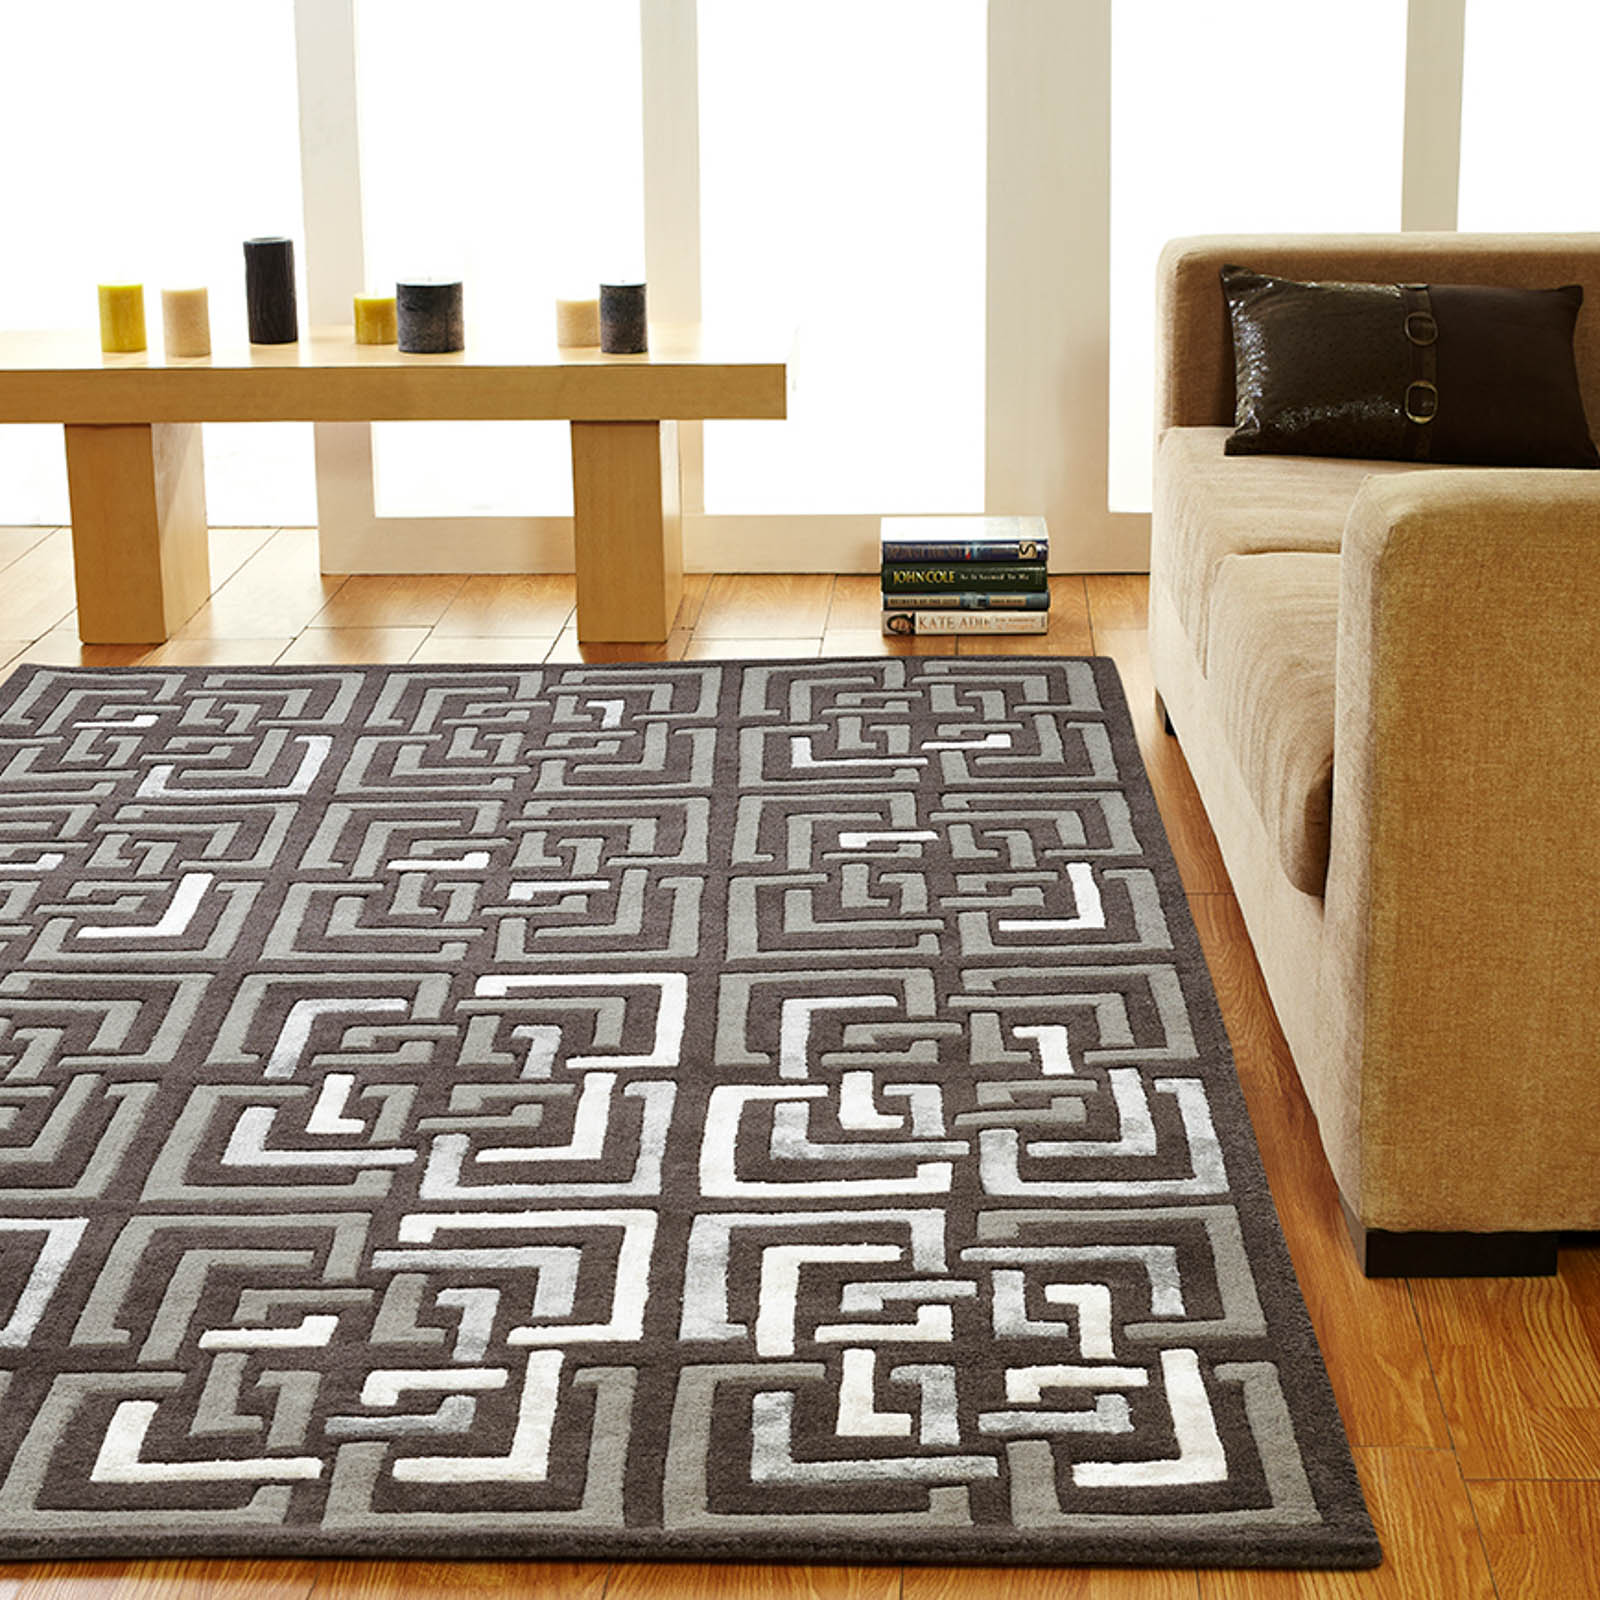 Unique Temple rugs in Charcoal